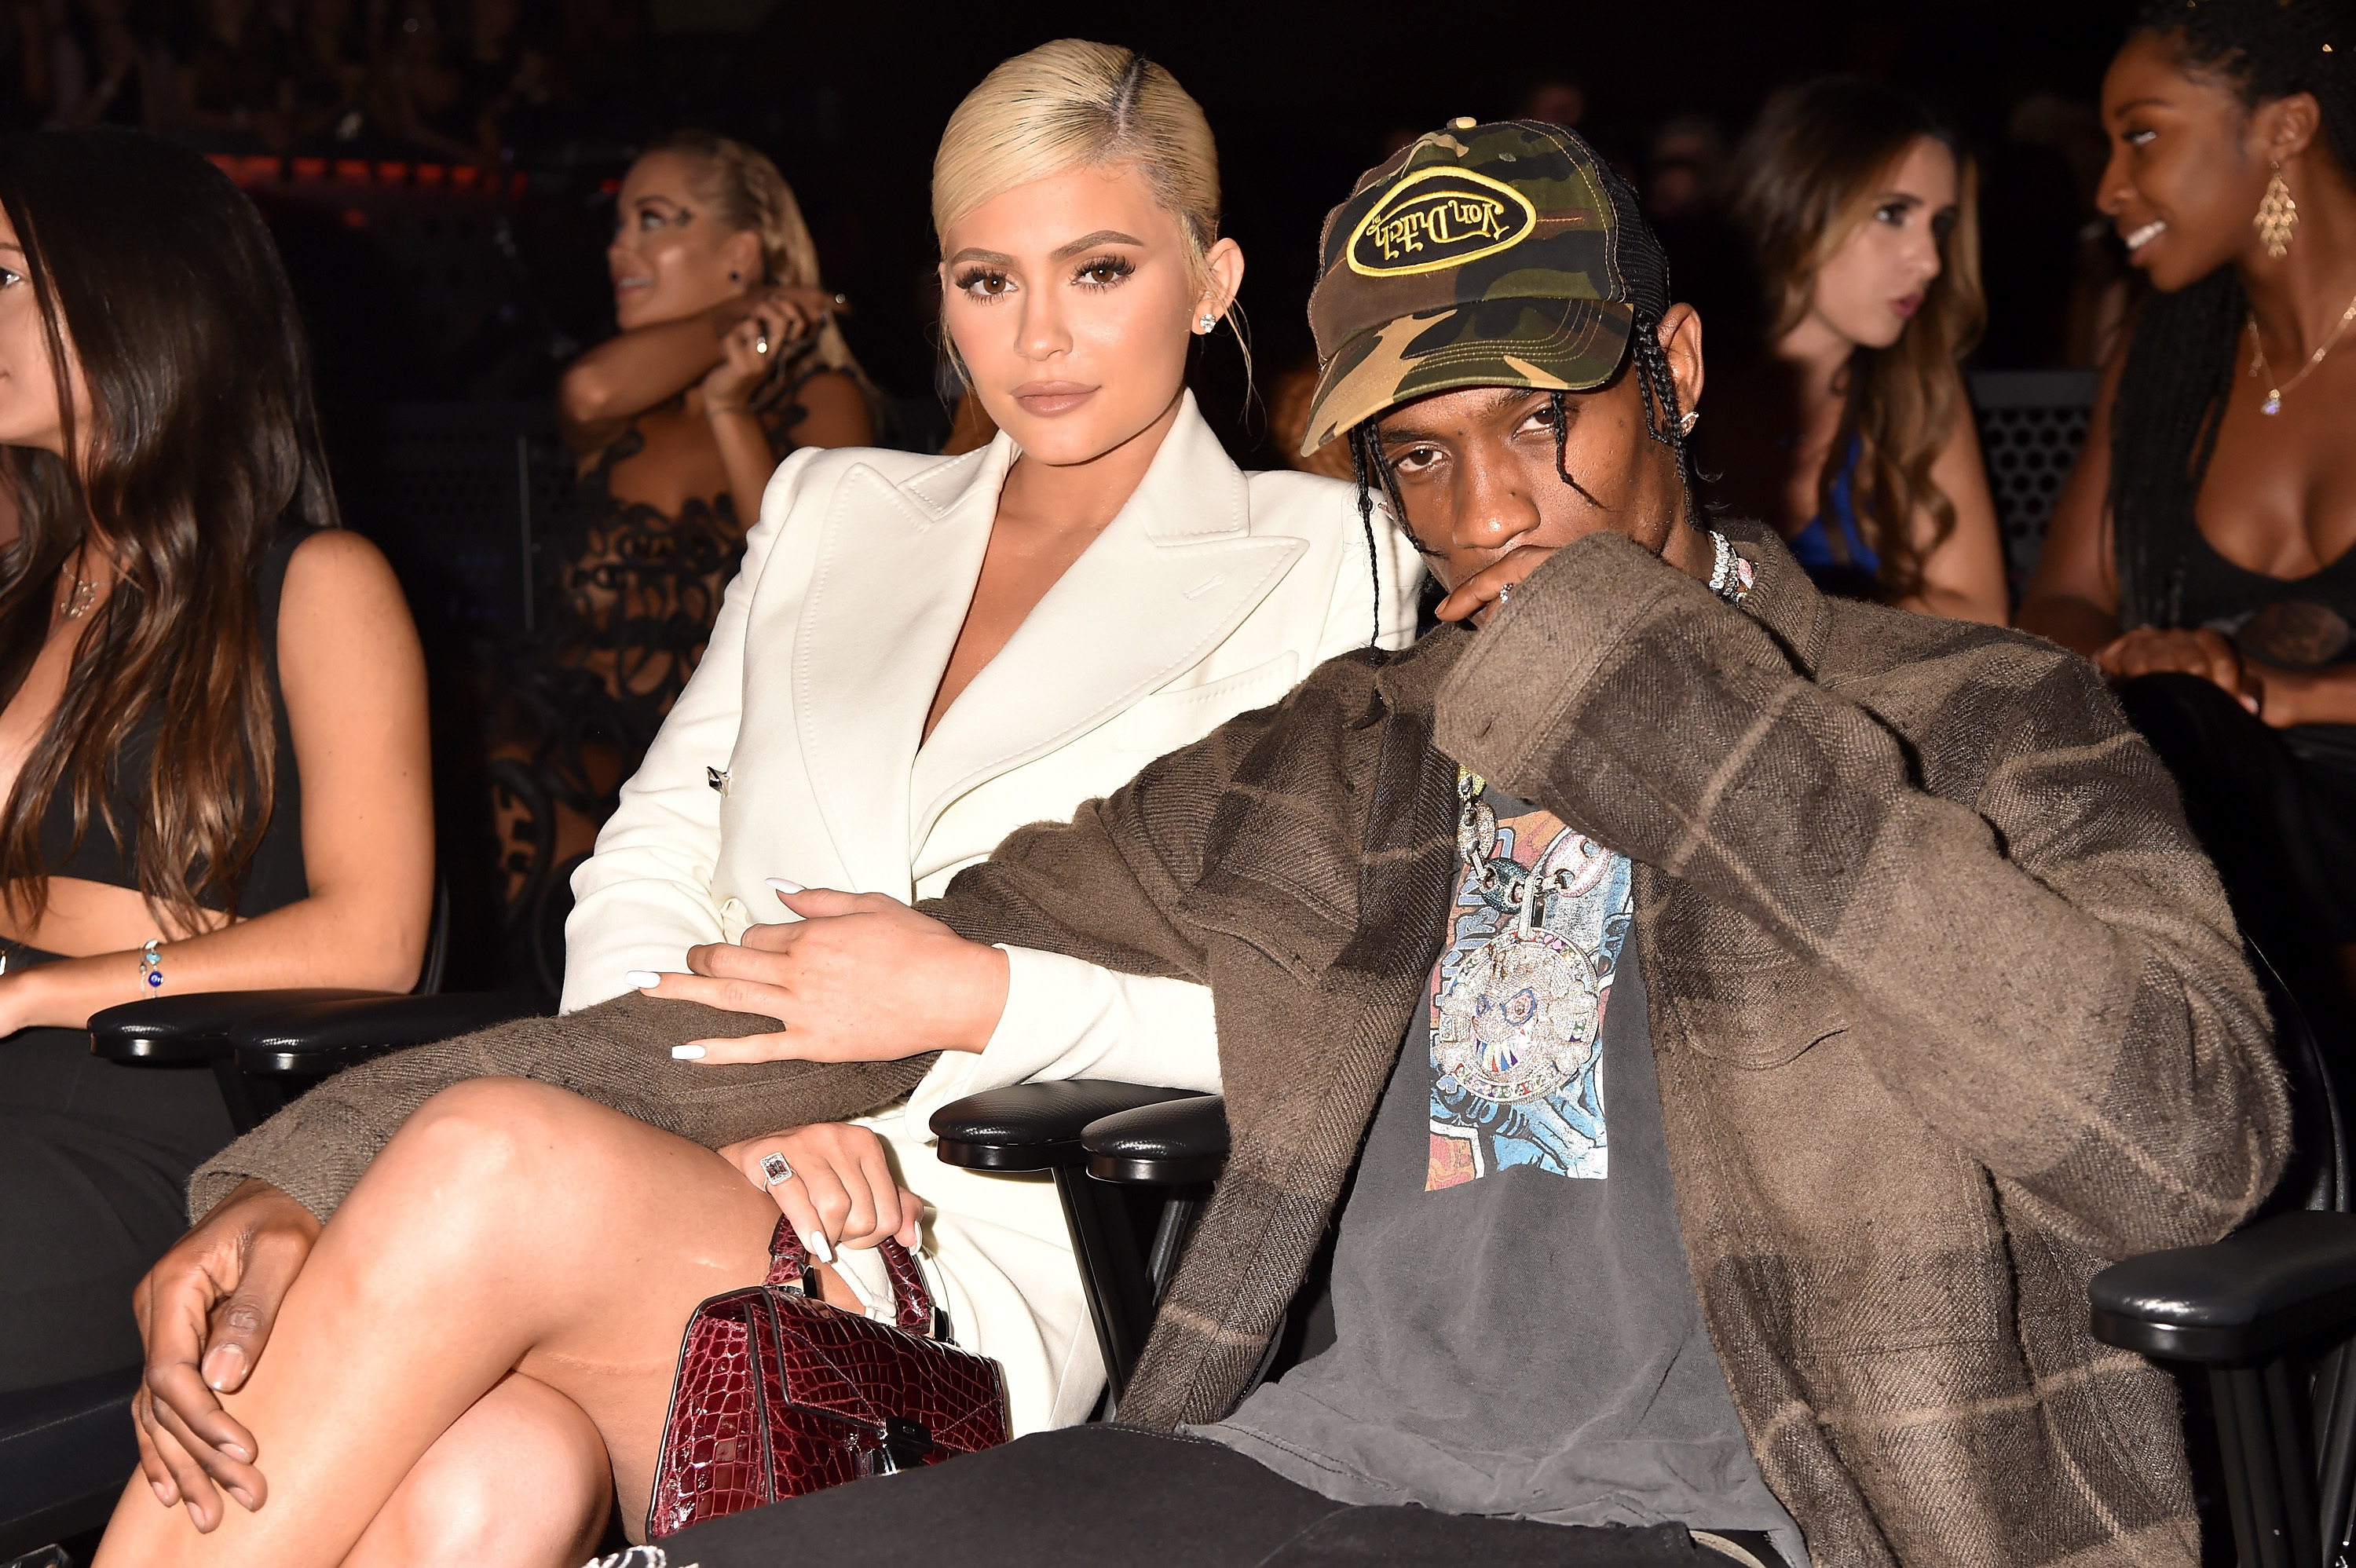 Kylie Jenner and Travis Scott sit together during the MTV Video Music Awards at Radio City Music Hall in New York City on Aug. 20, 2018.